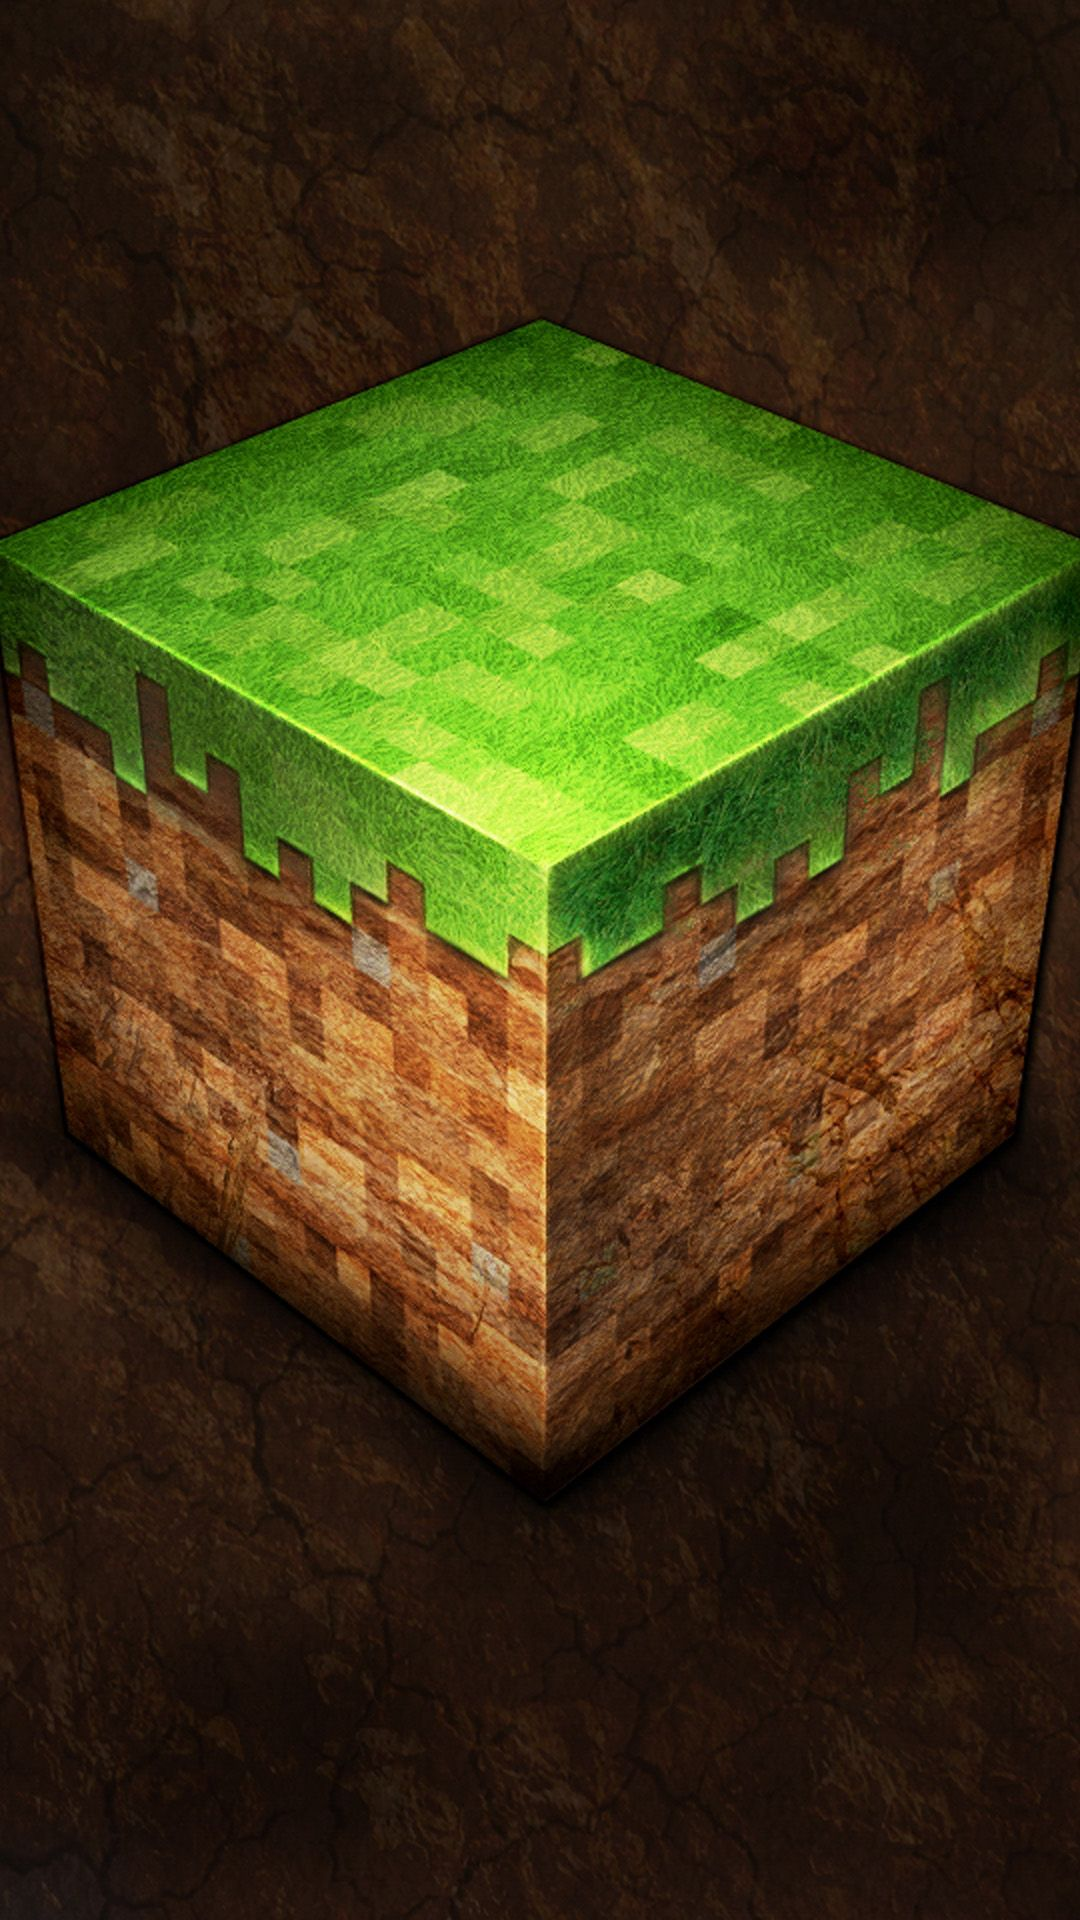 Good Wallpaper Minecraft Iphone 4s - c9a46fe574565fbd9412ab84155e0b51  2018_508619.jpg